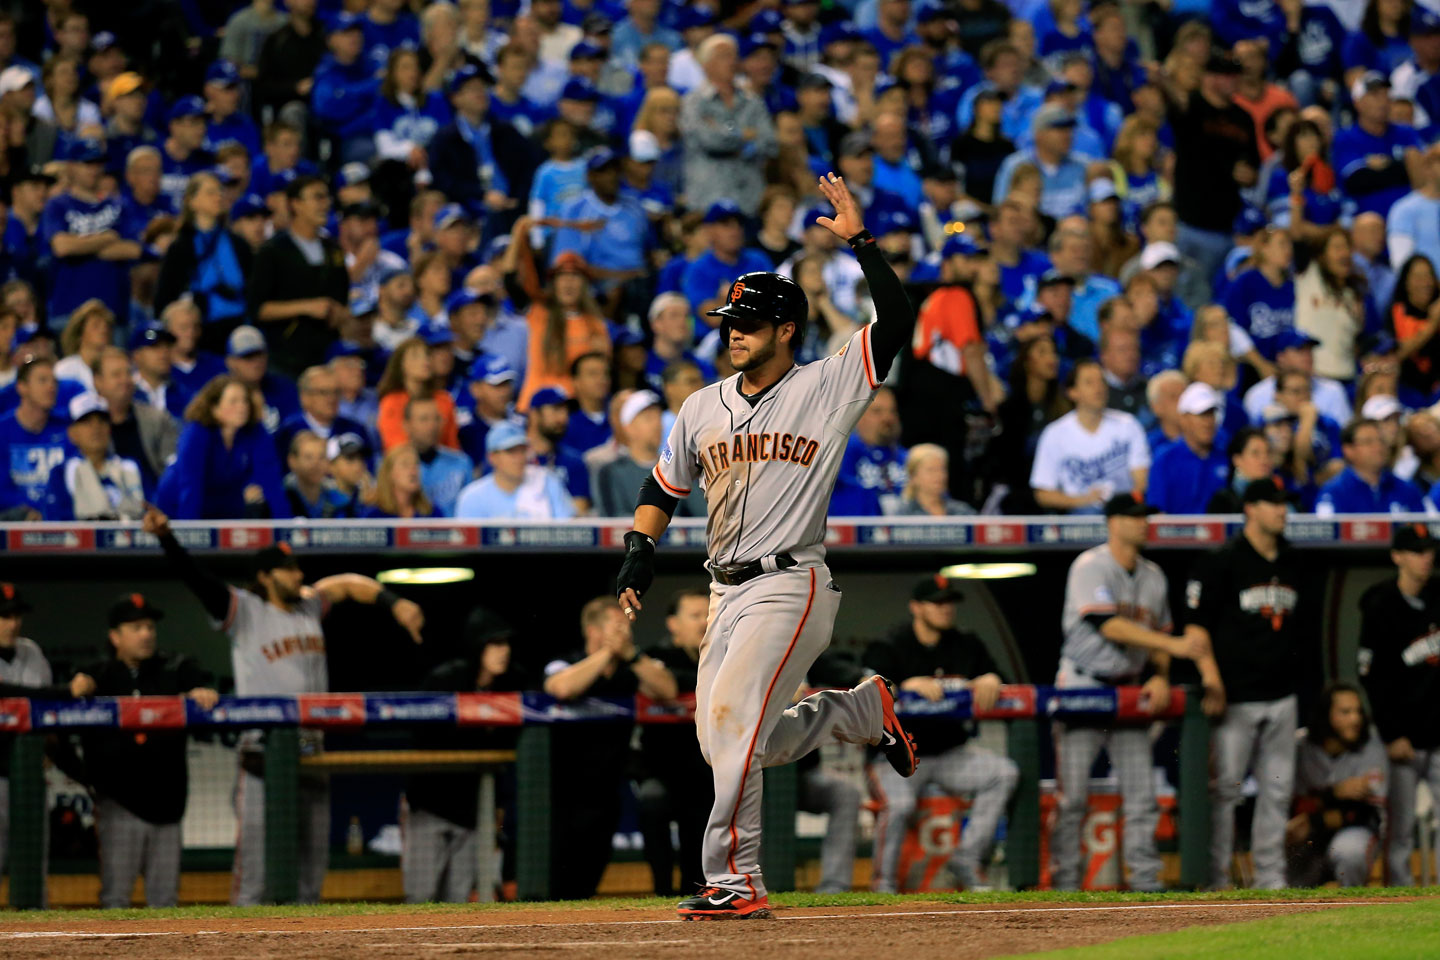 Gregor Blanco, who had singled to lead off the game, trots across the plate on a Pablo Sandoval double in the top of the first. Giants 1, Royals 0.  (Rob Carr/Getty Images)